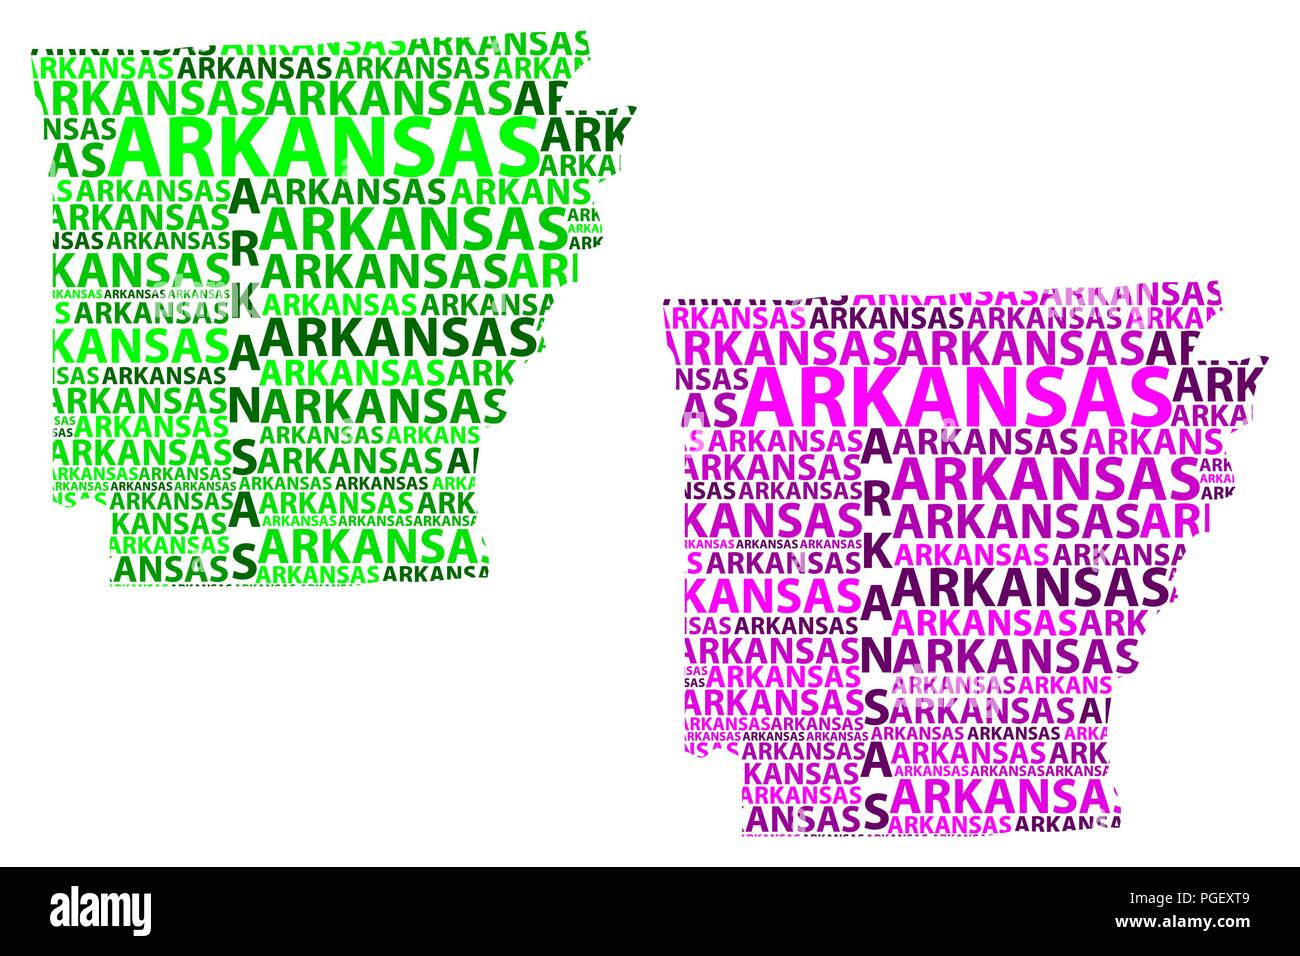 Arkansas United States Map.Sketch Arkansas United States Of America The Natural State The